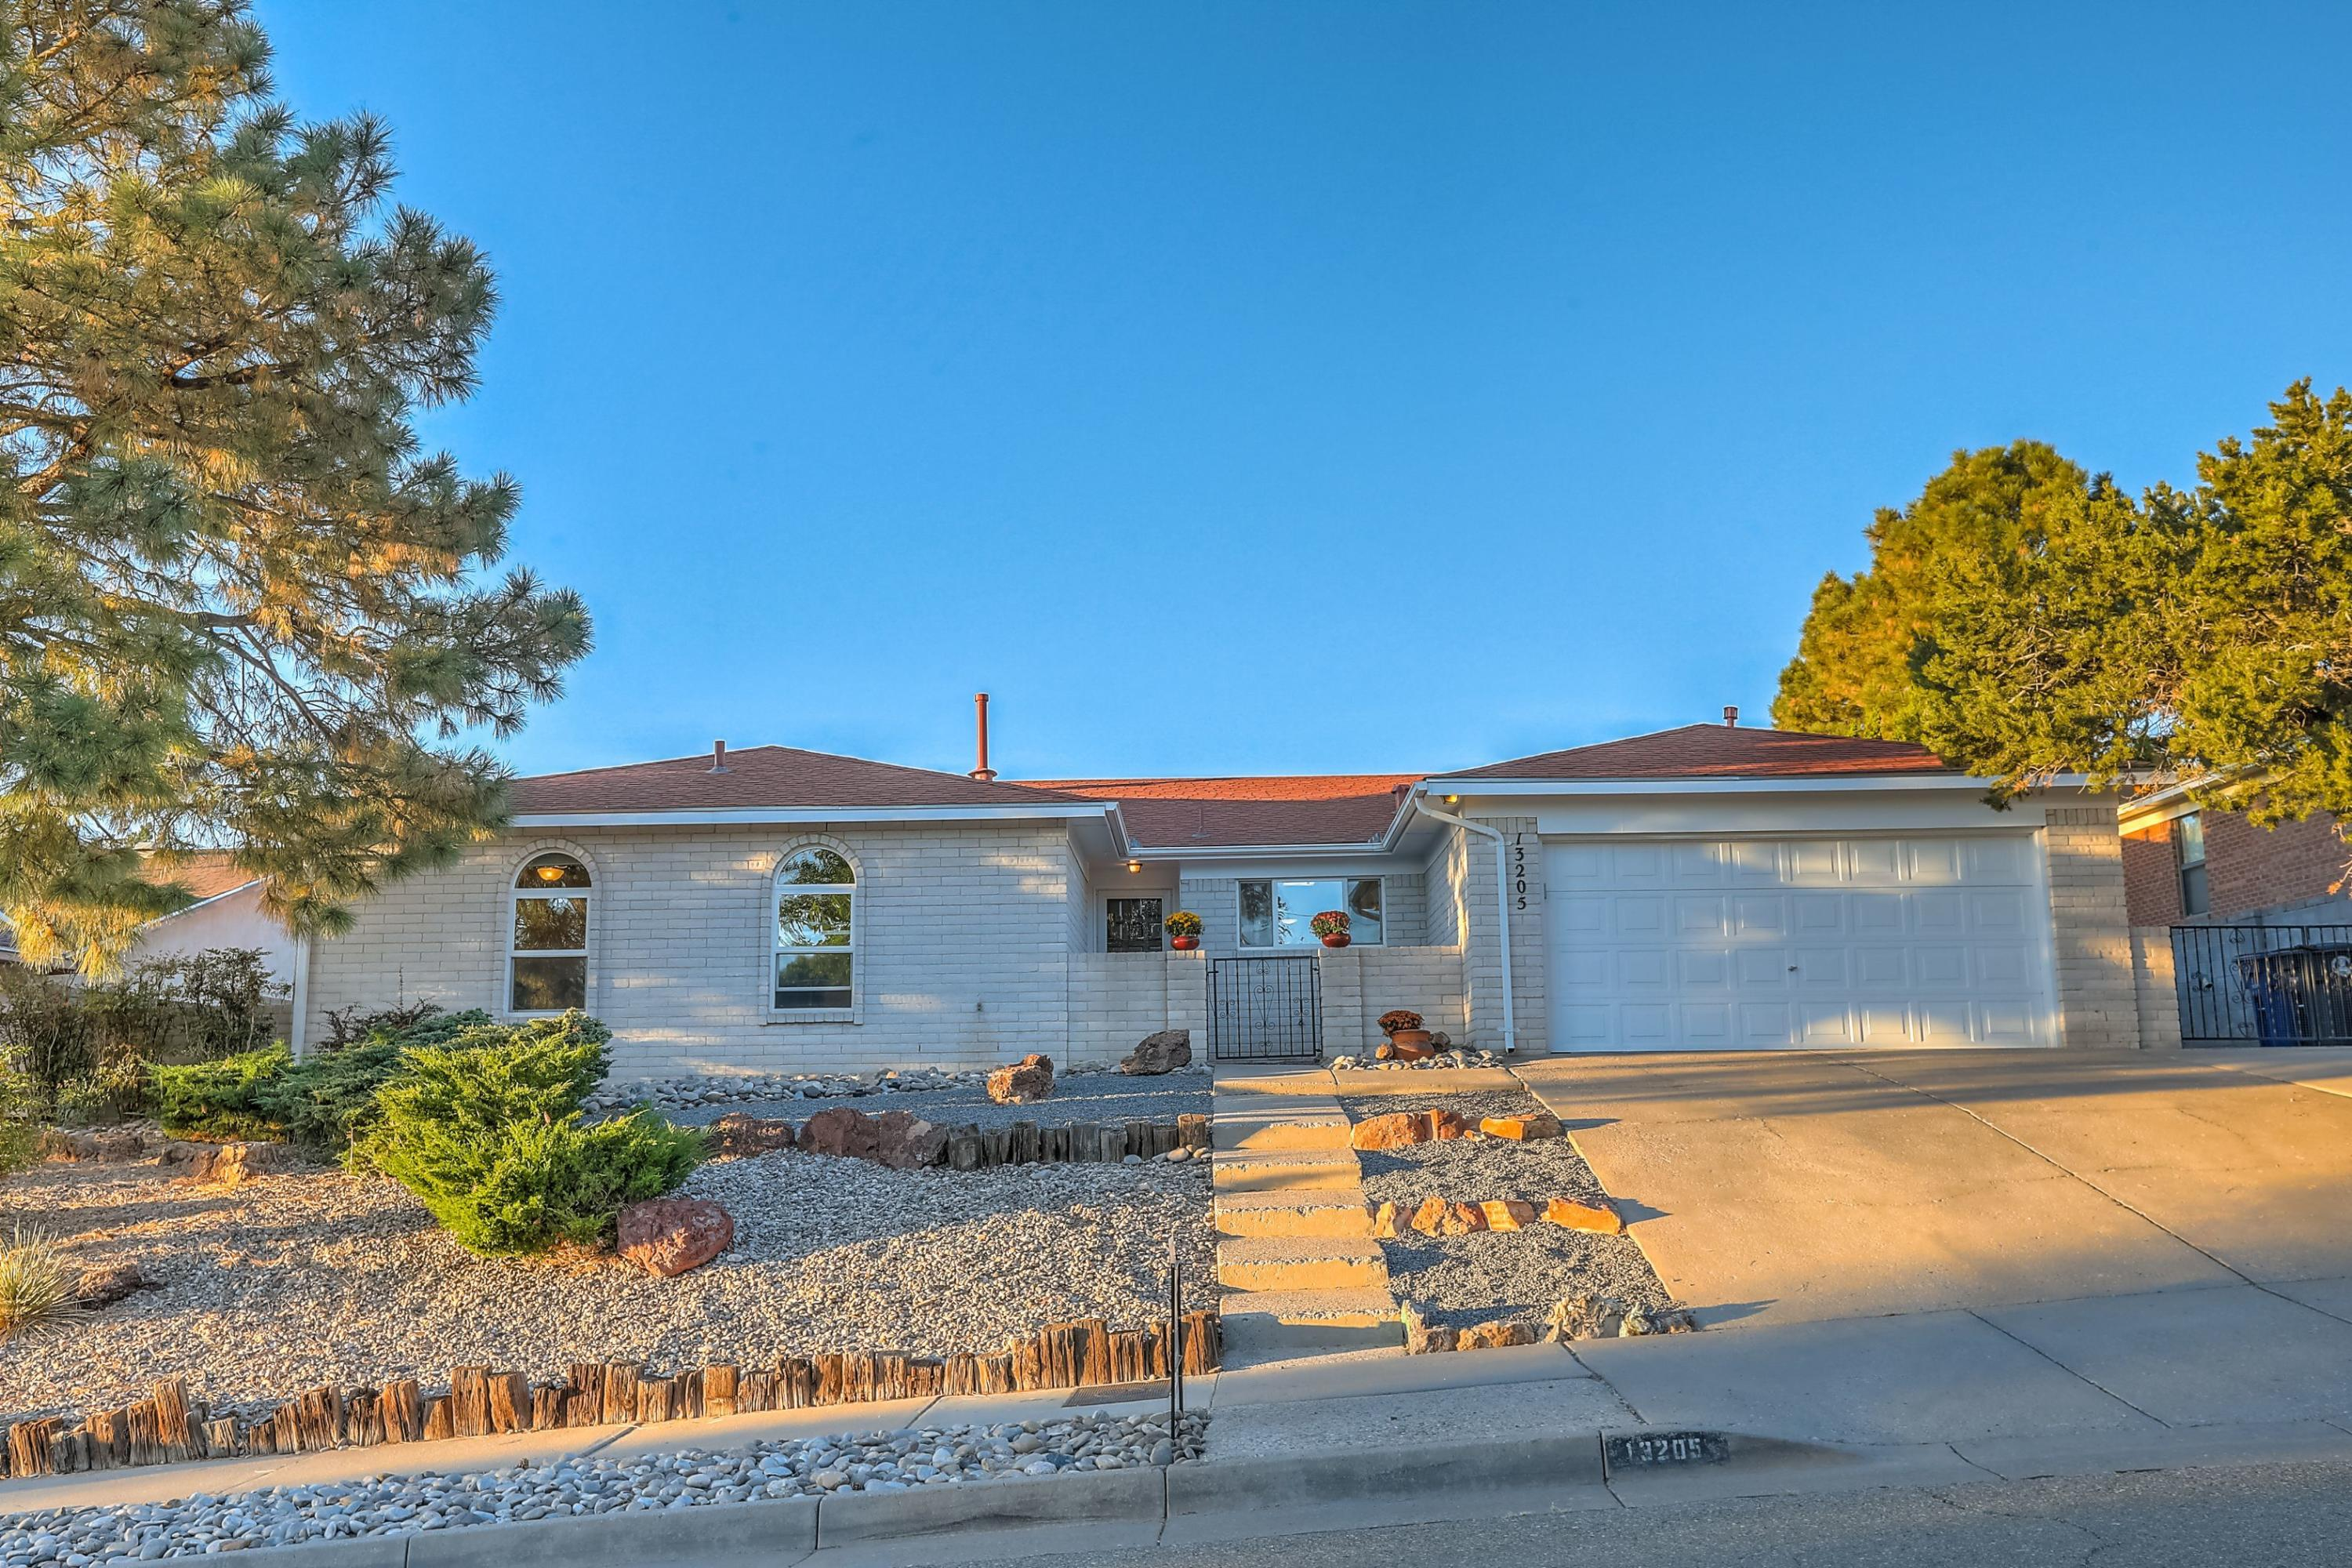 Check out this Beautiful Four Bedroom, White Slump block Ranch, in the foothills of Glenwood Hills! Numerous recent updates. Light and Bright with Custom Rock Face Wood Burning Fireplace with open Dining Room and Family Room. Side yard access and big Back Yard! Within walking distance to Sandia National Forrest area and Park.